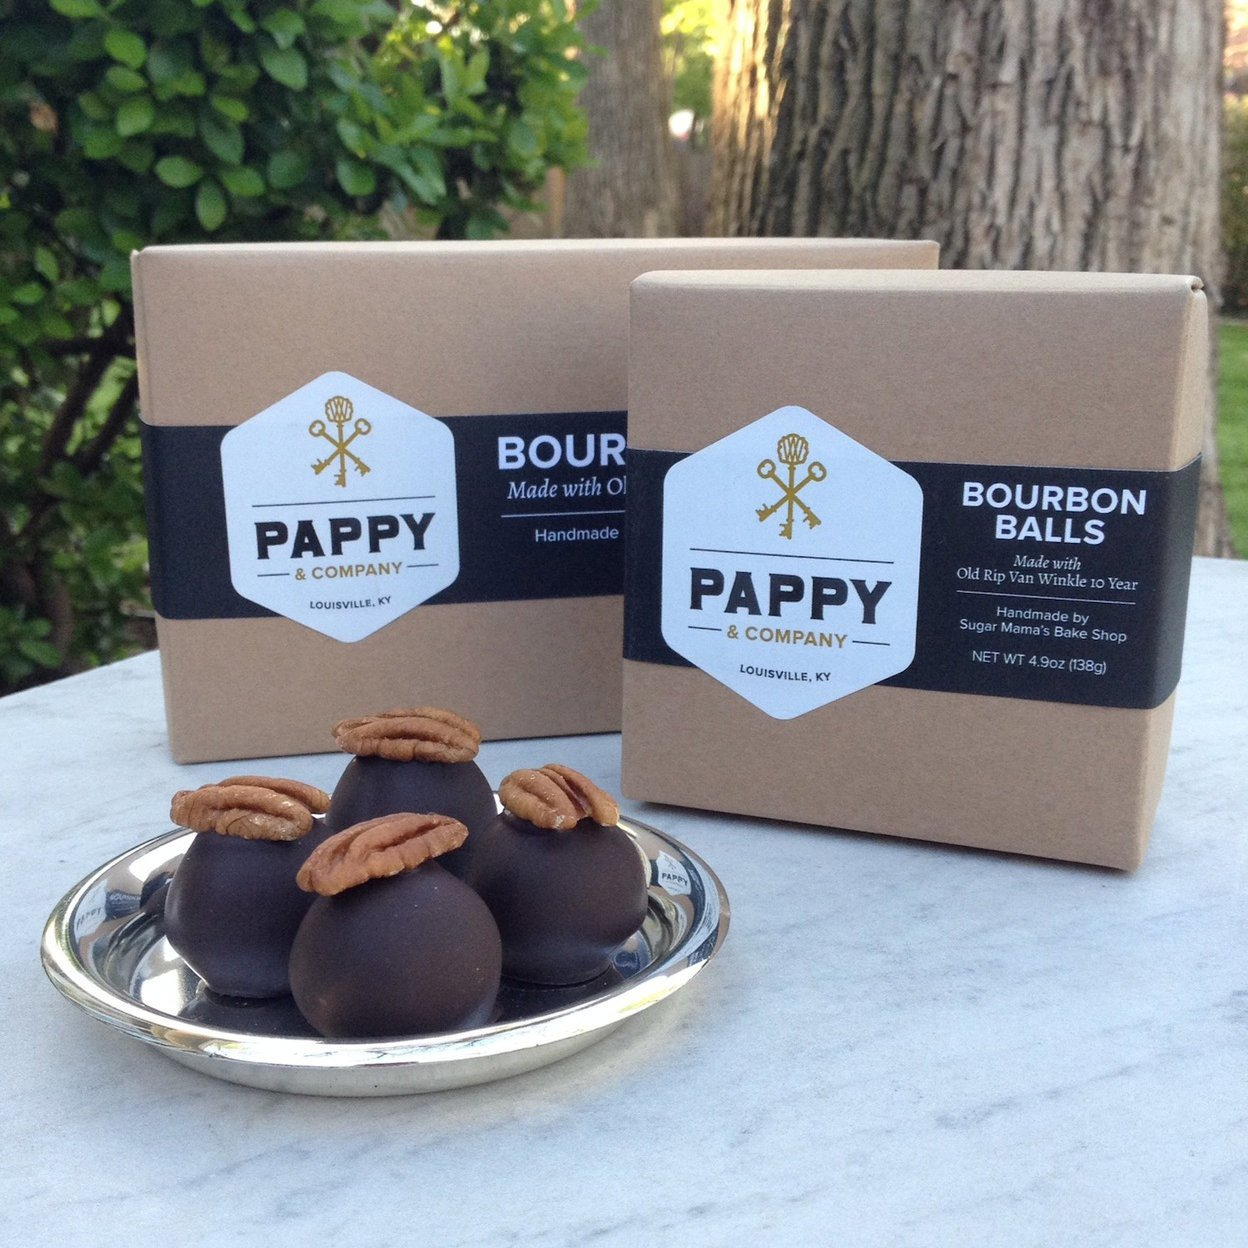 Bourbon Balls Four-Pack; Courtesy of Pappy & Company